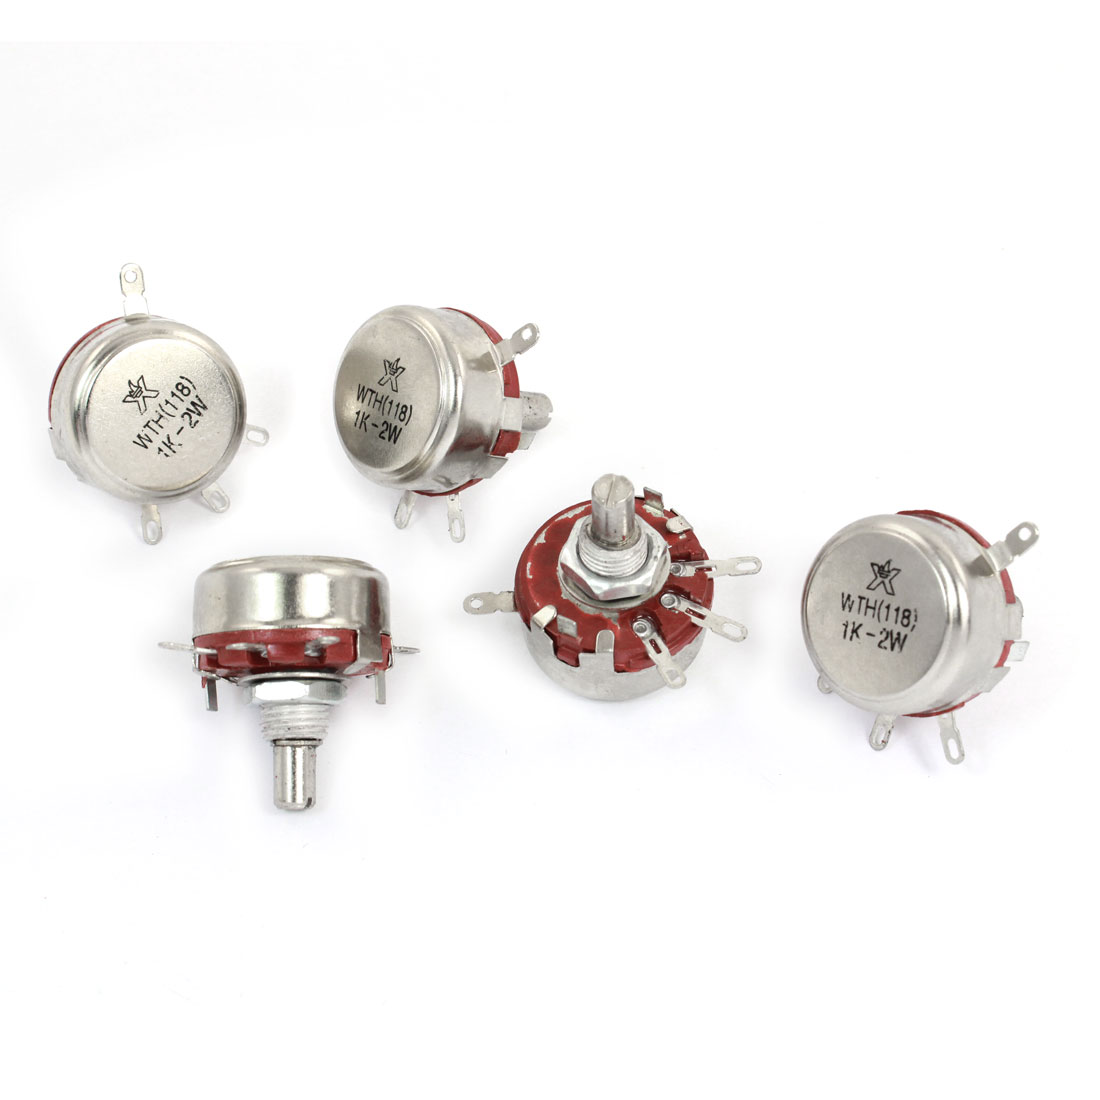 5 Pcs 1K ohm 2W 6mm Round Shaft 4 Terminal Rotary Carbon Potentiometer WTH118